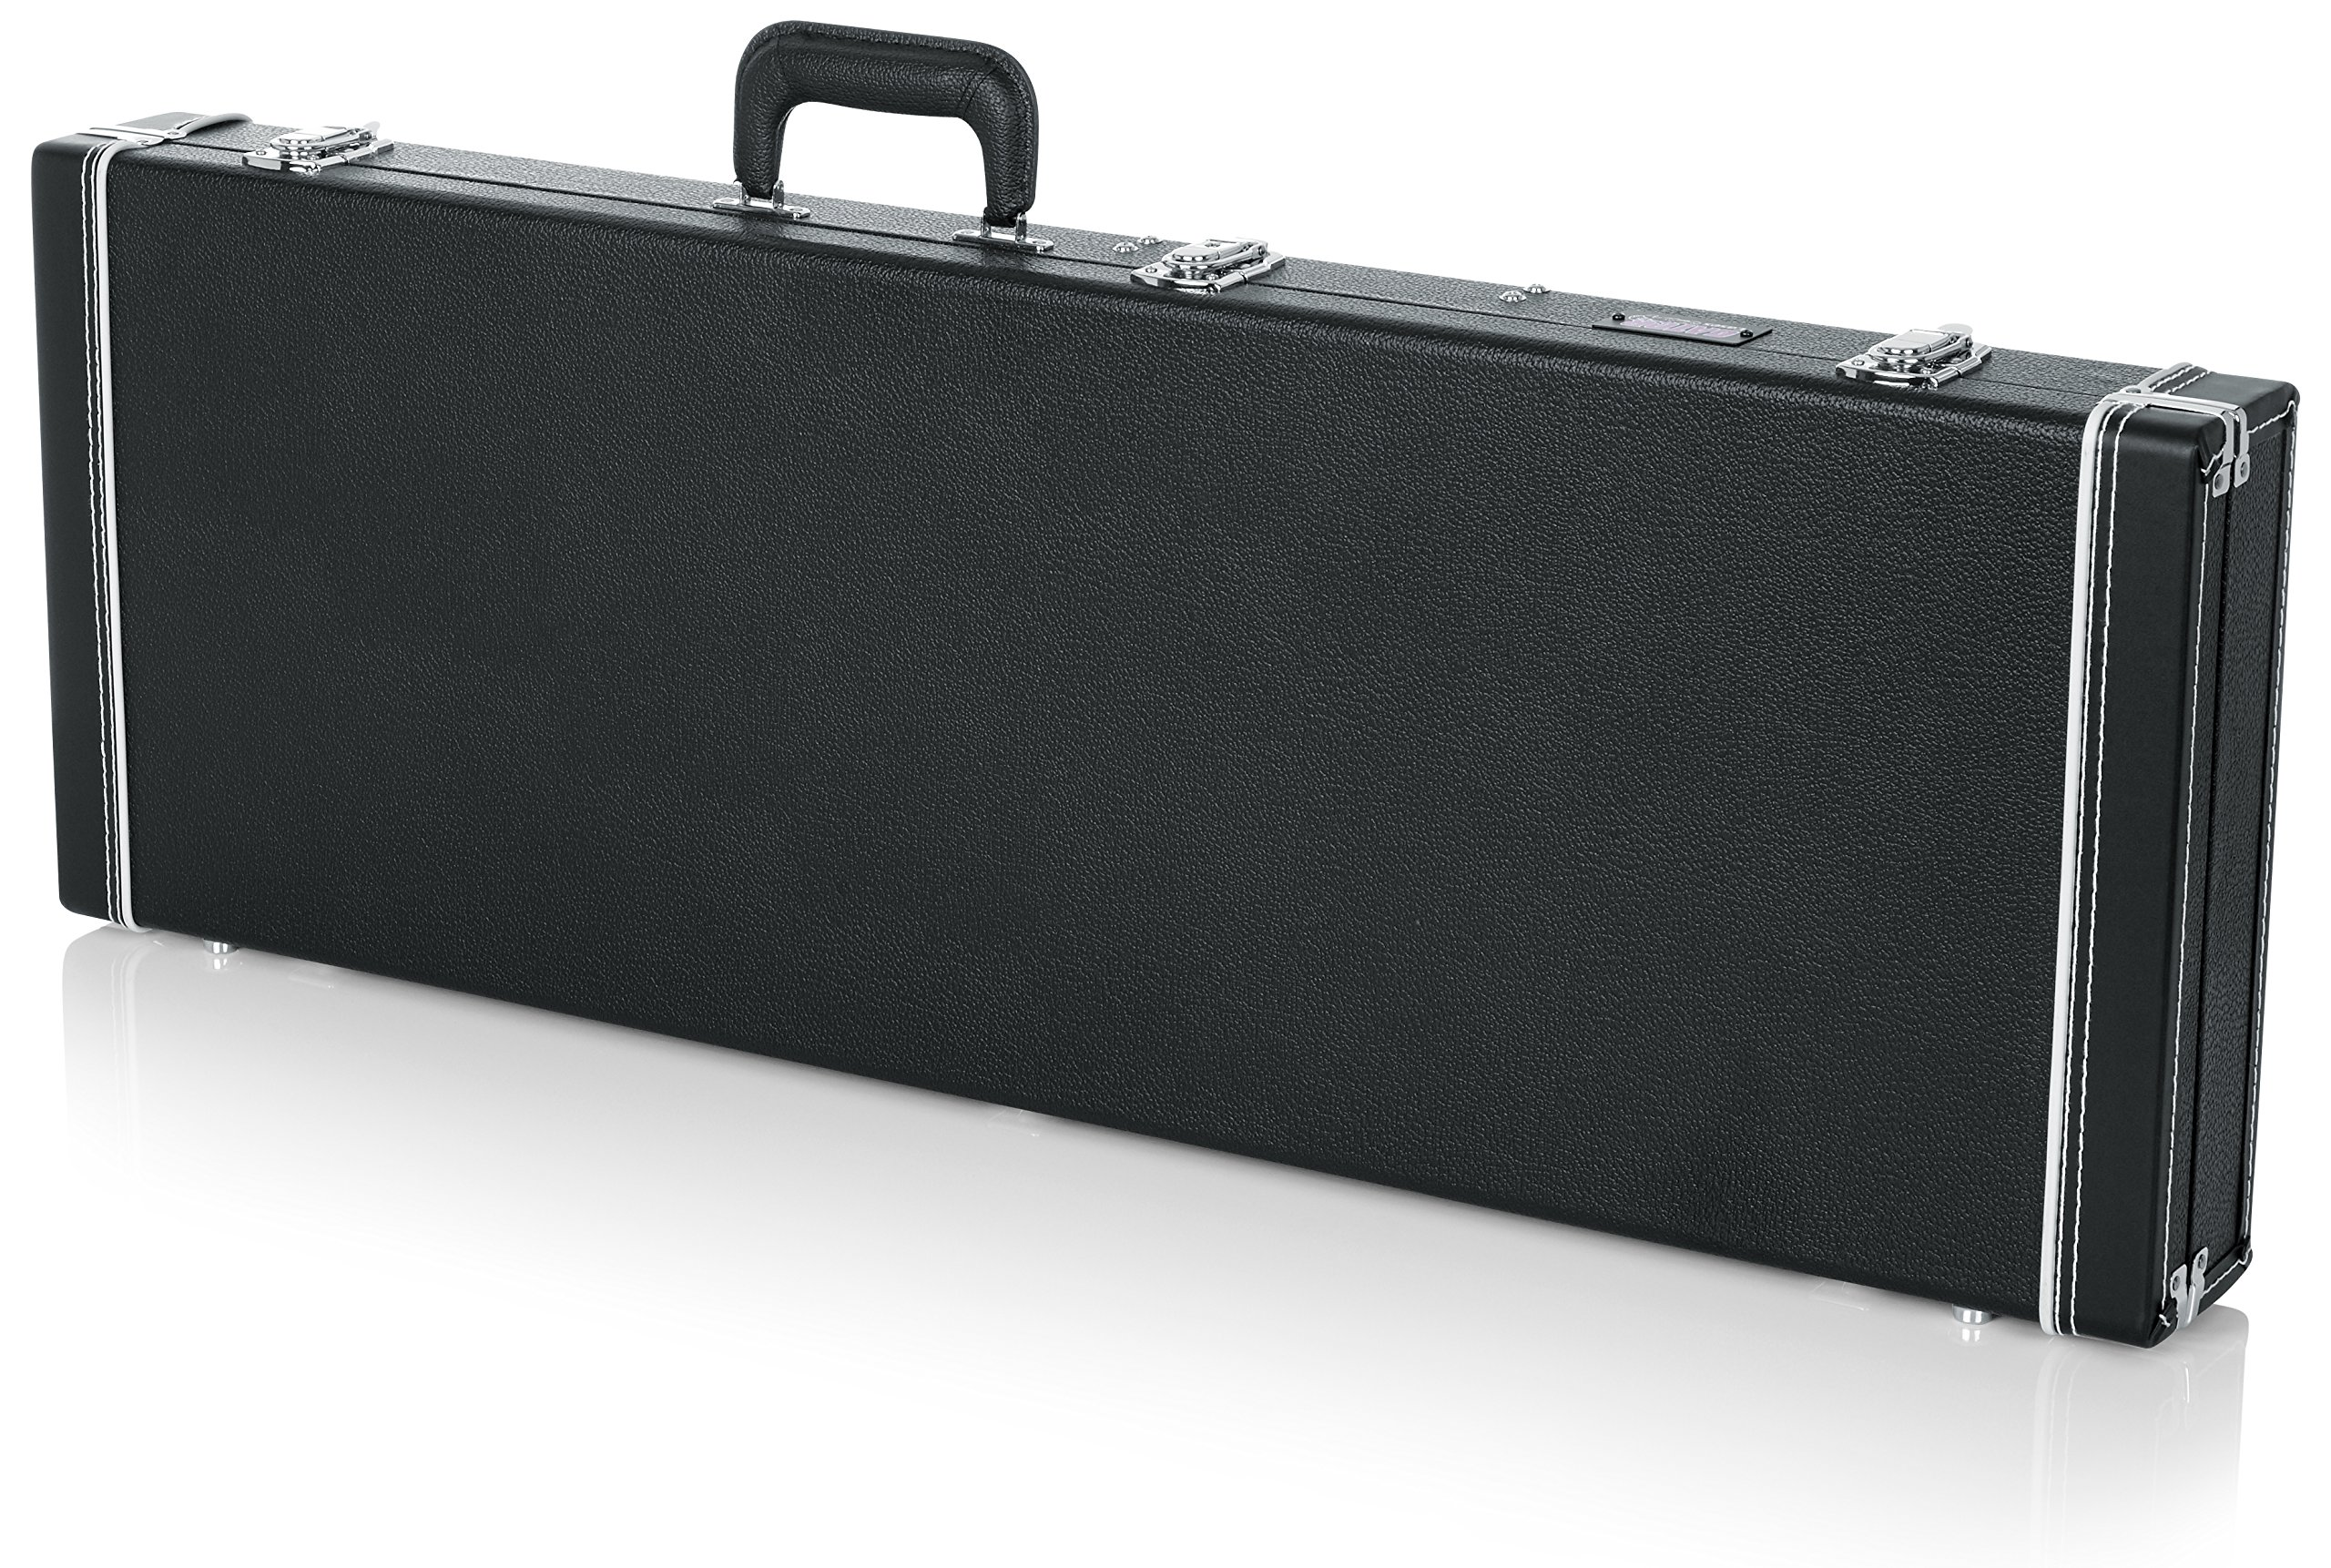 Gator Cases Deluxe Wood Case for Electric Guitars (GW-ELECTRIC)